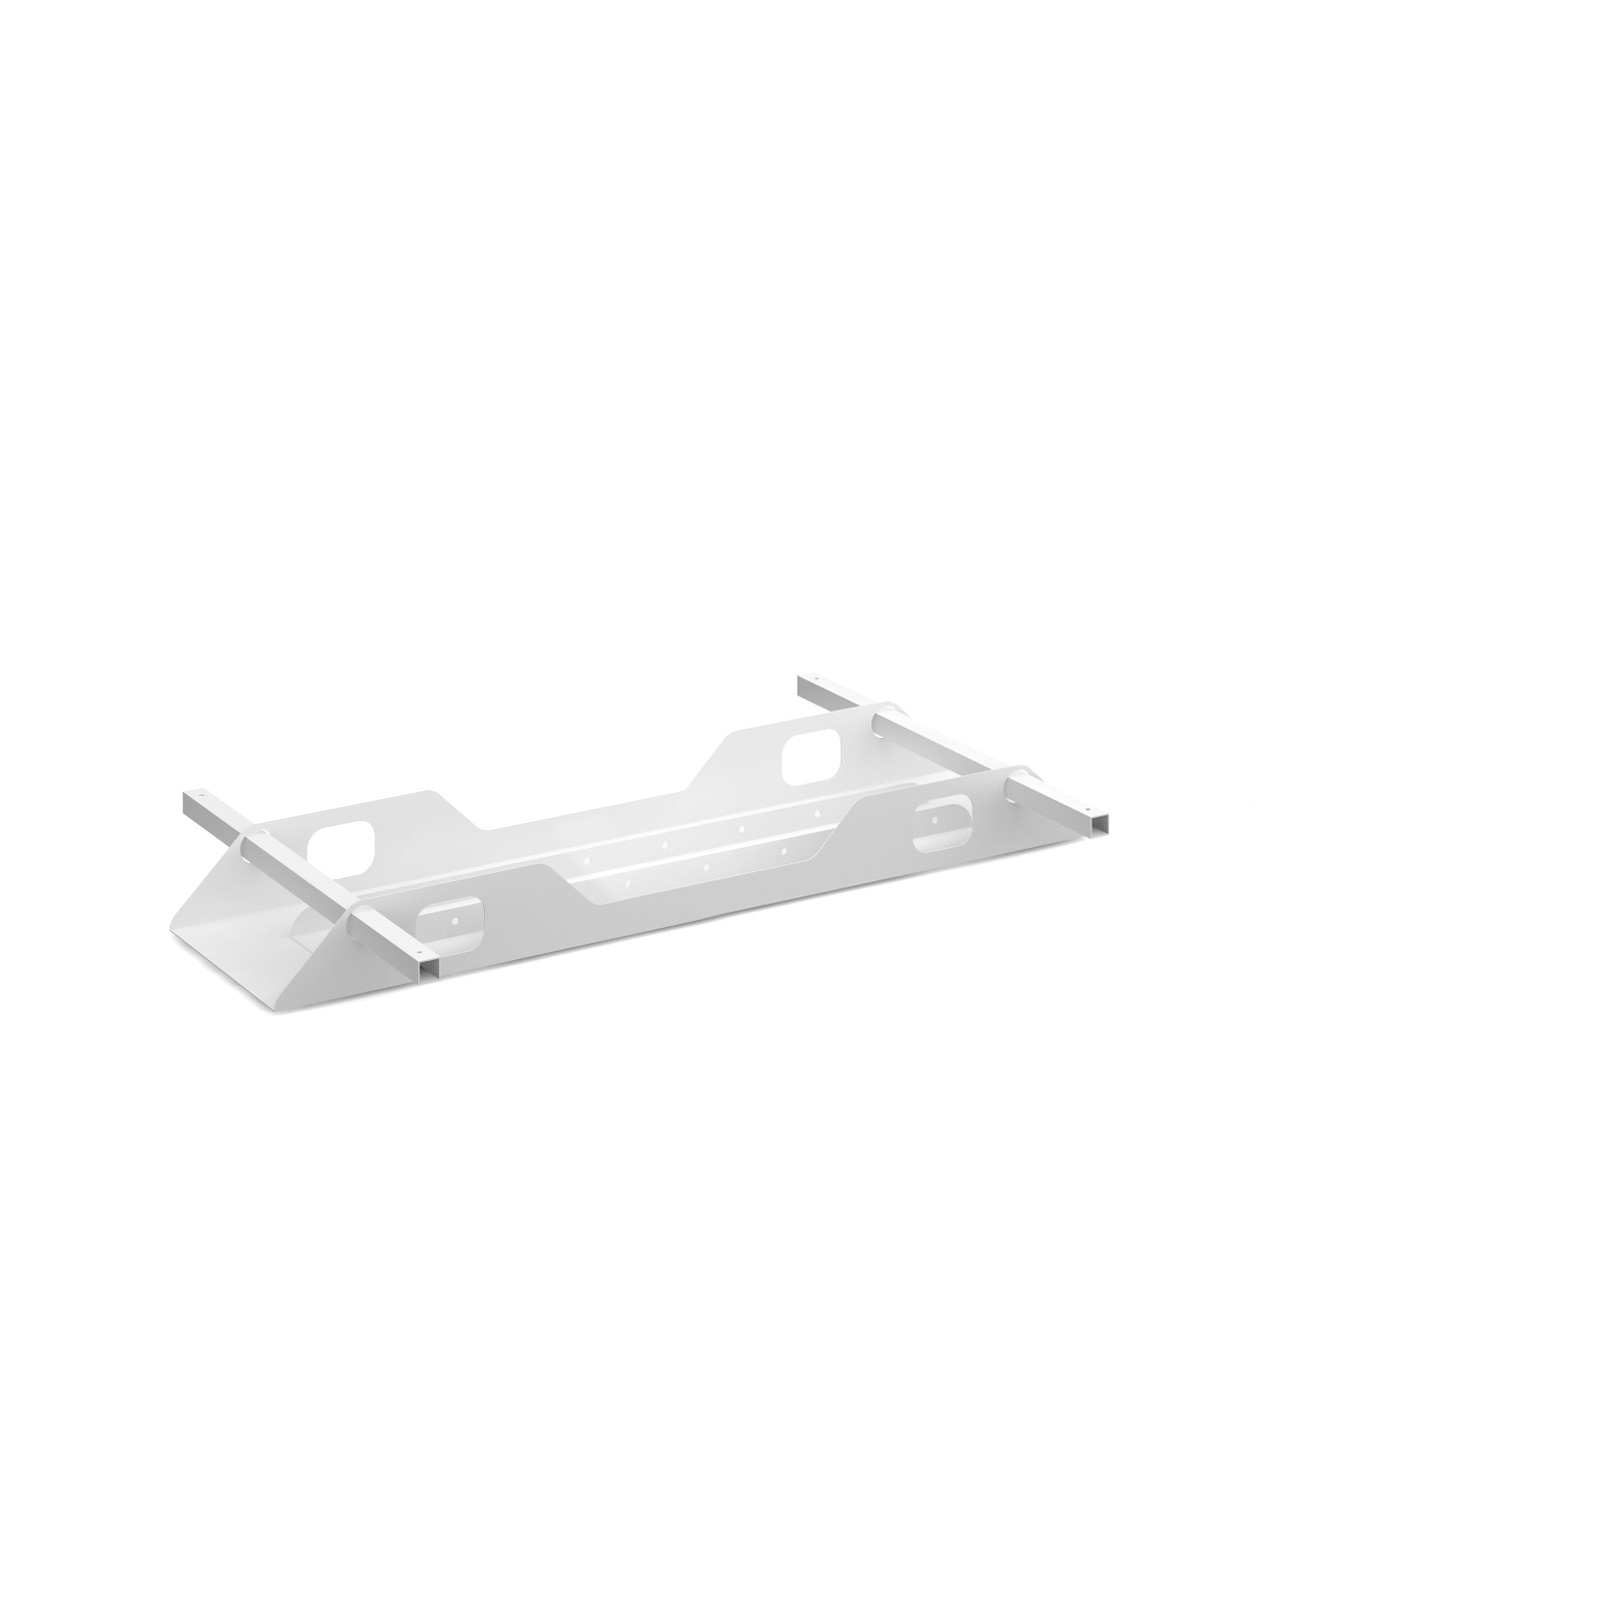 Connex Double Cable Tray 1200mm in white